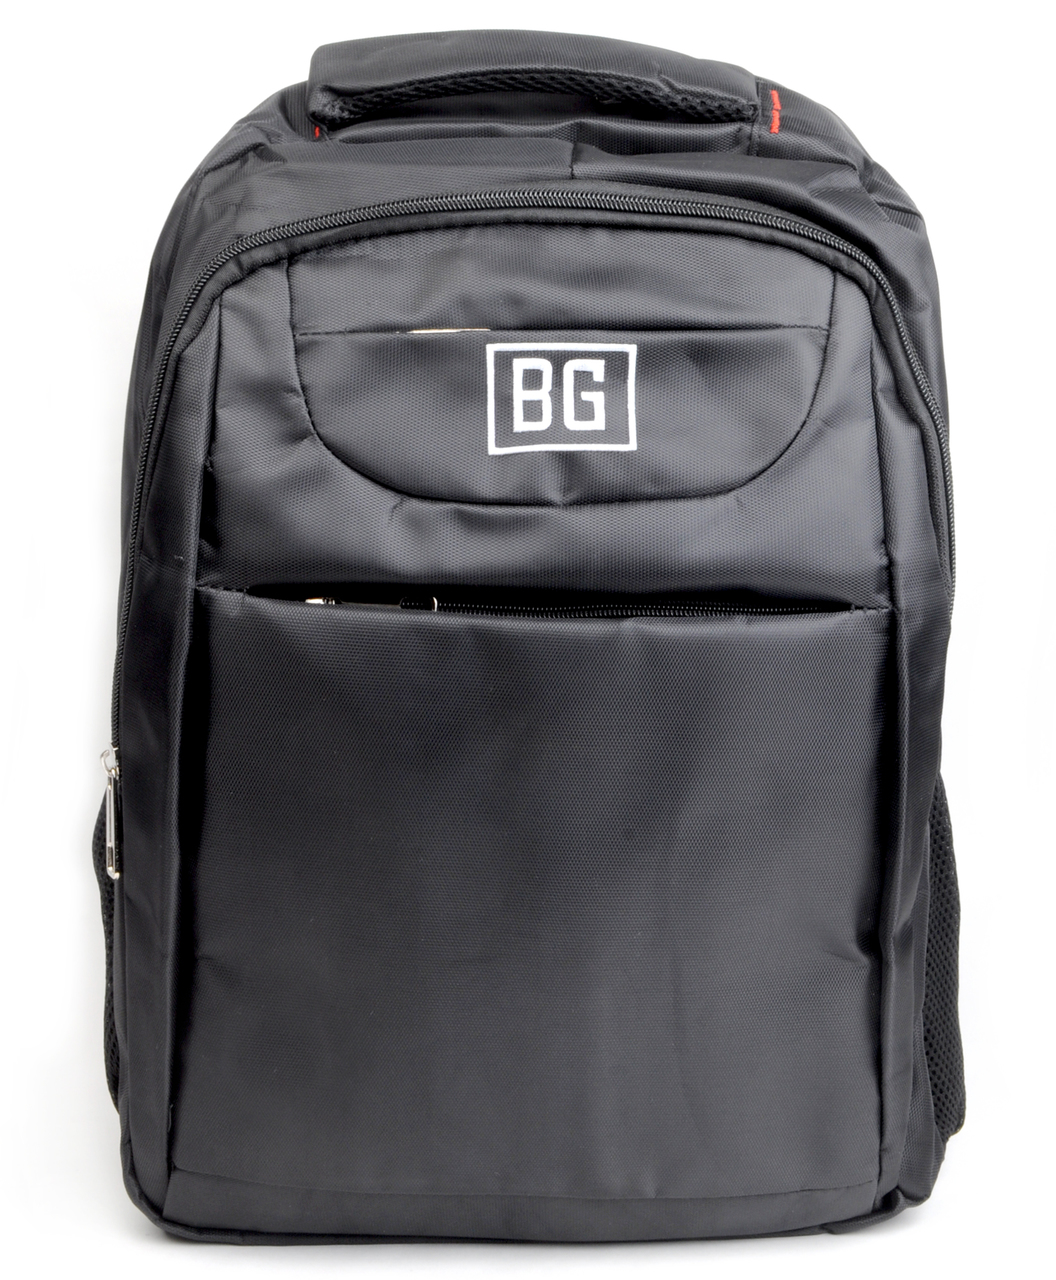 Durable LAPTOP Backpack for Travel & School  BGBP111615